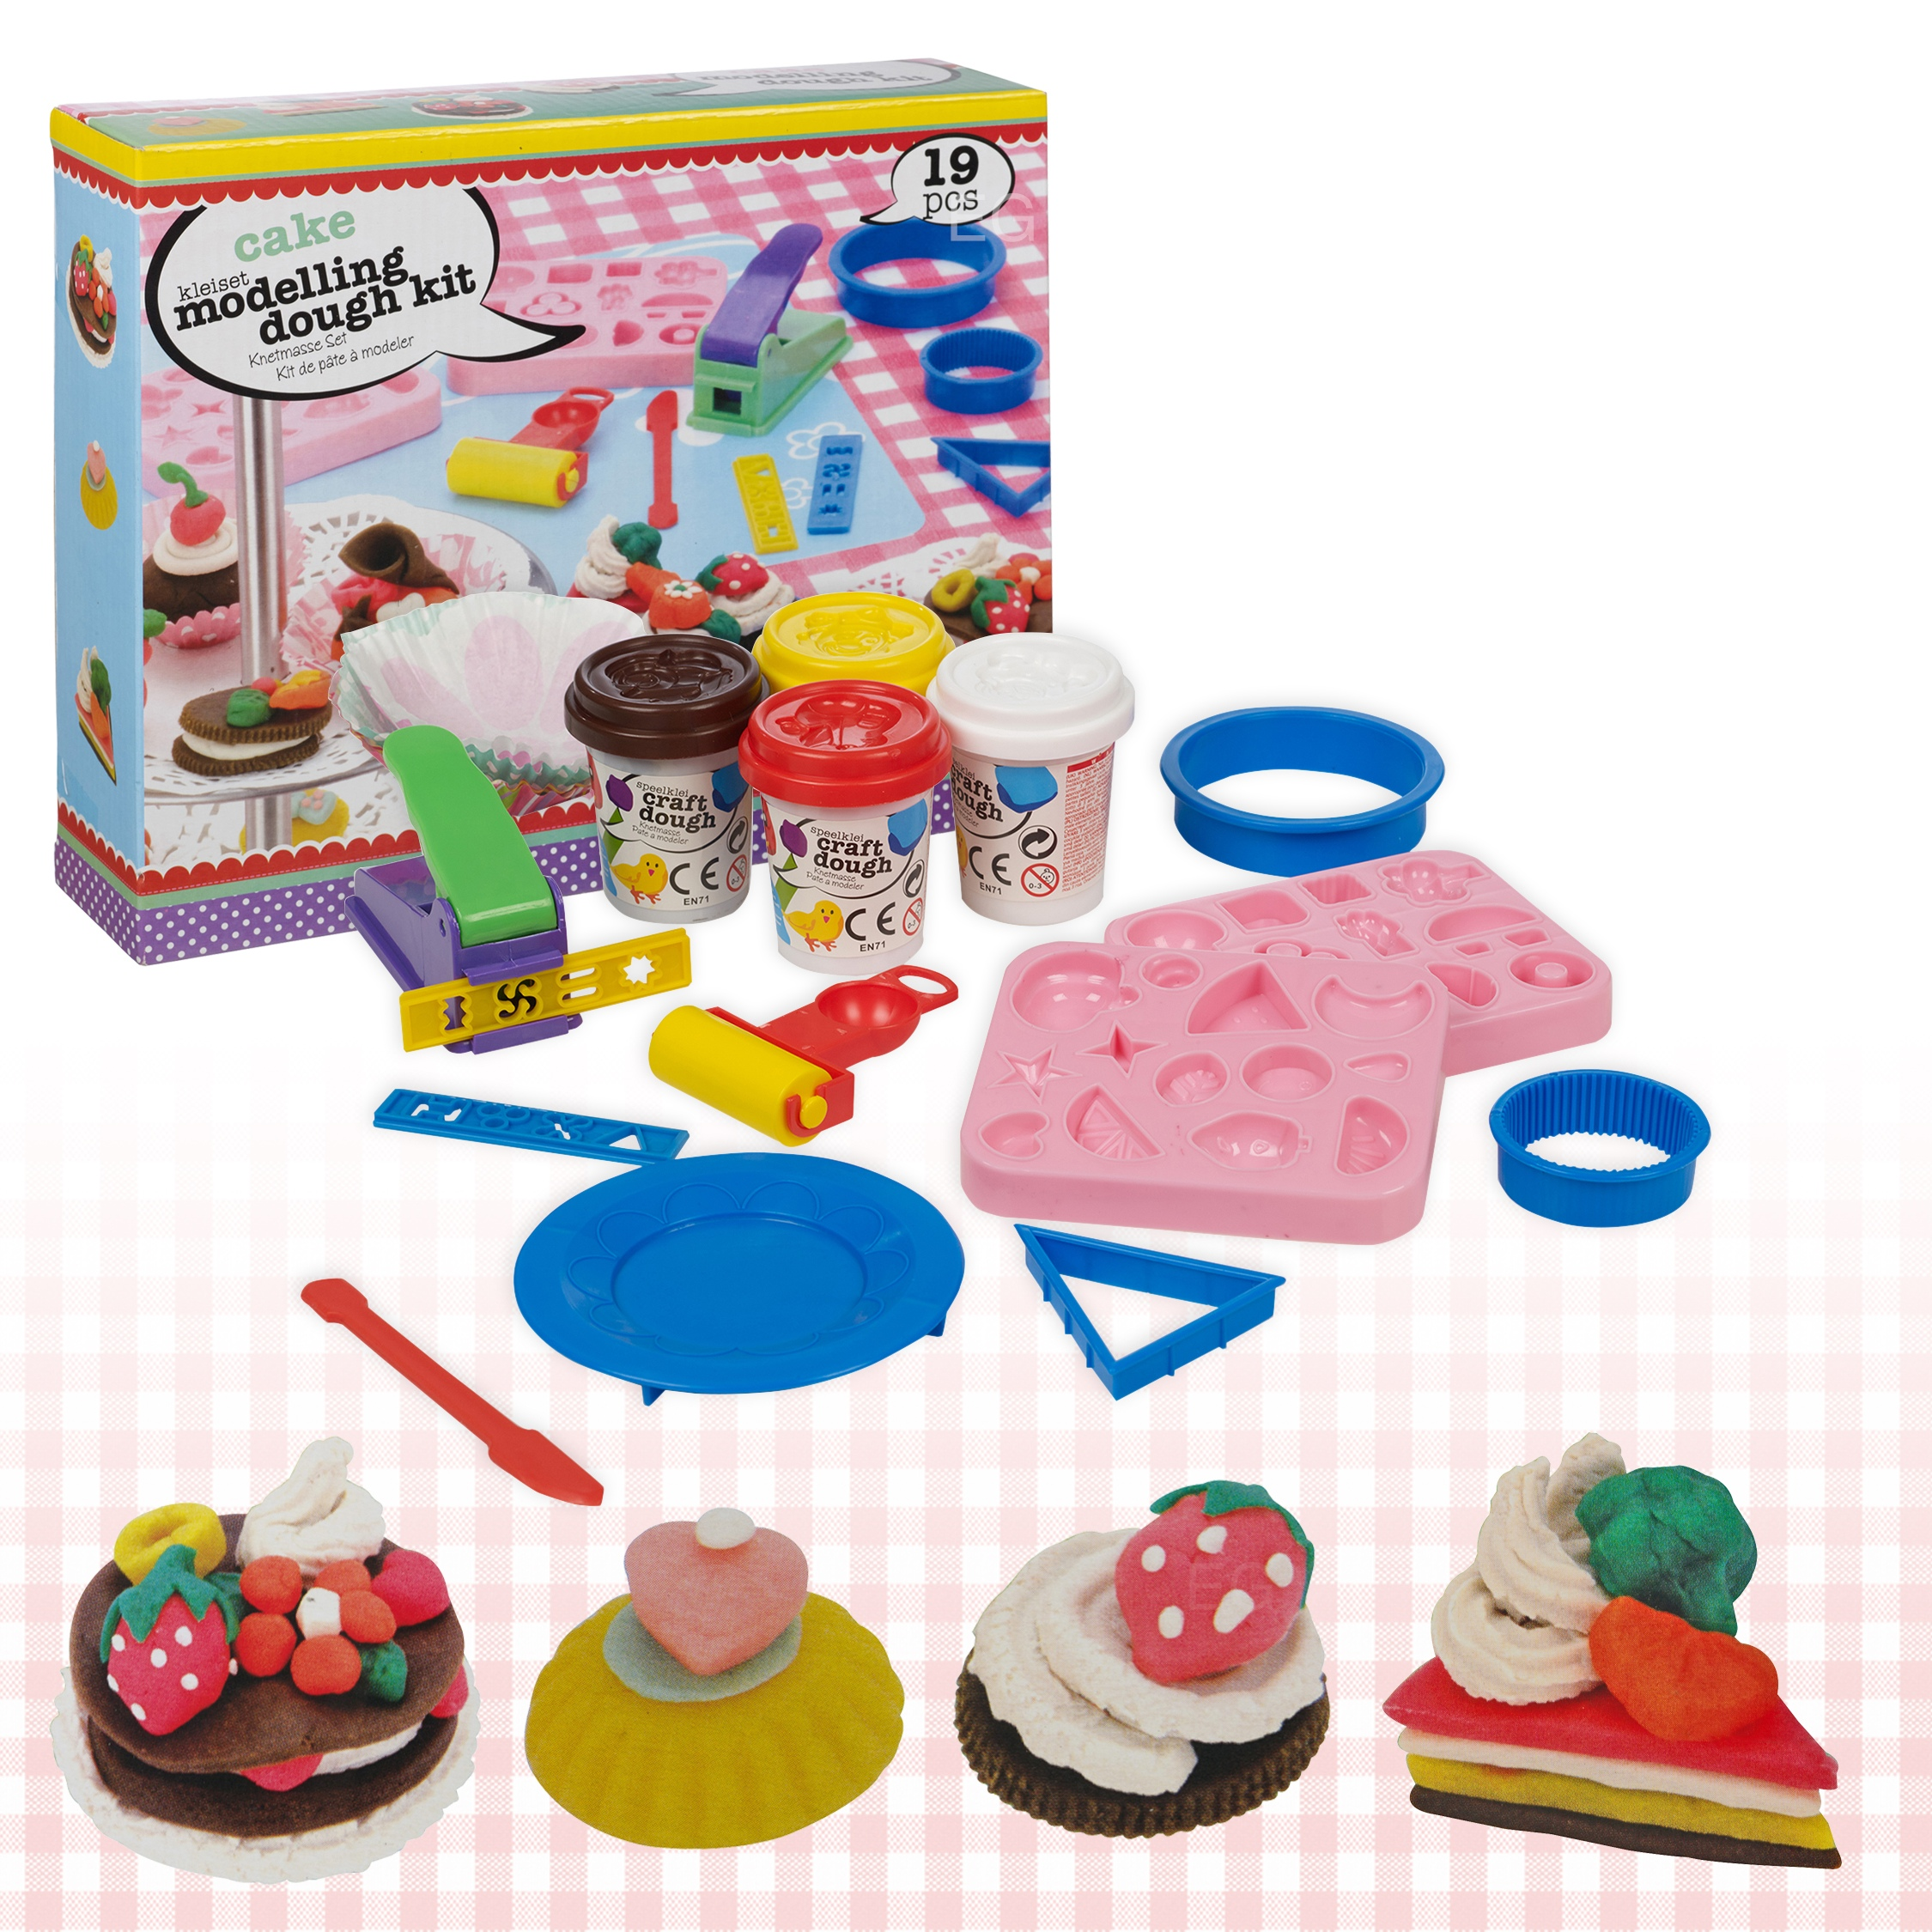 Playdough Cake Decorating Kit : Cake Modelling Play Dough 19pc Kit Tools Accessories Set 4 ...